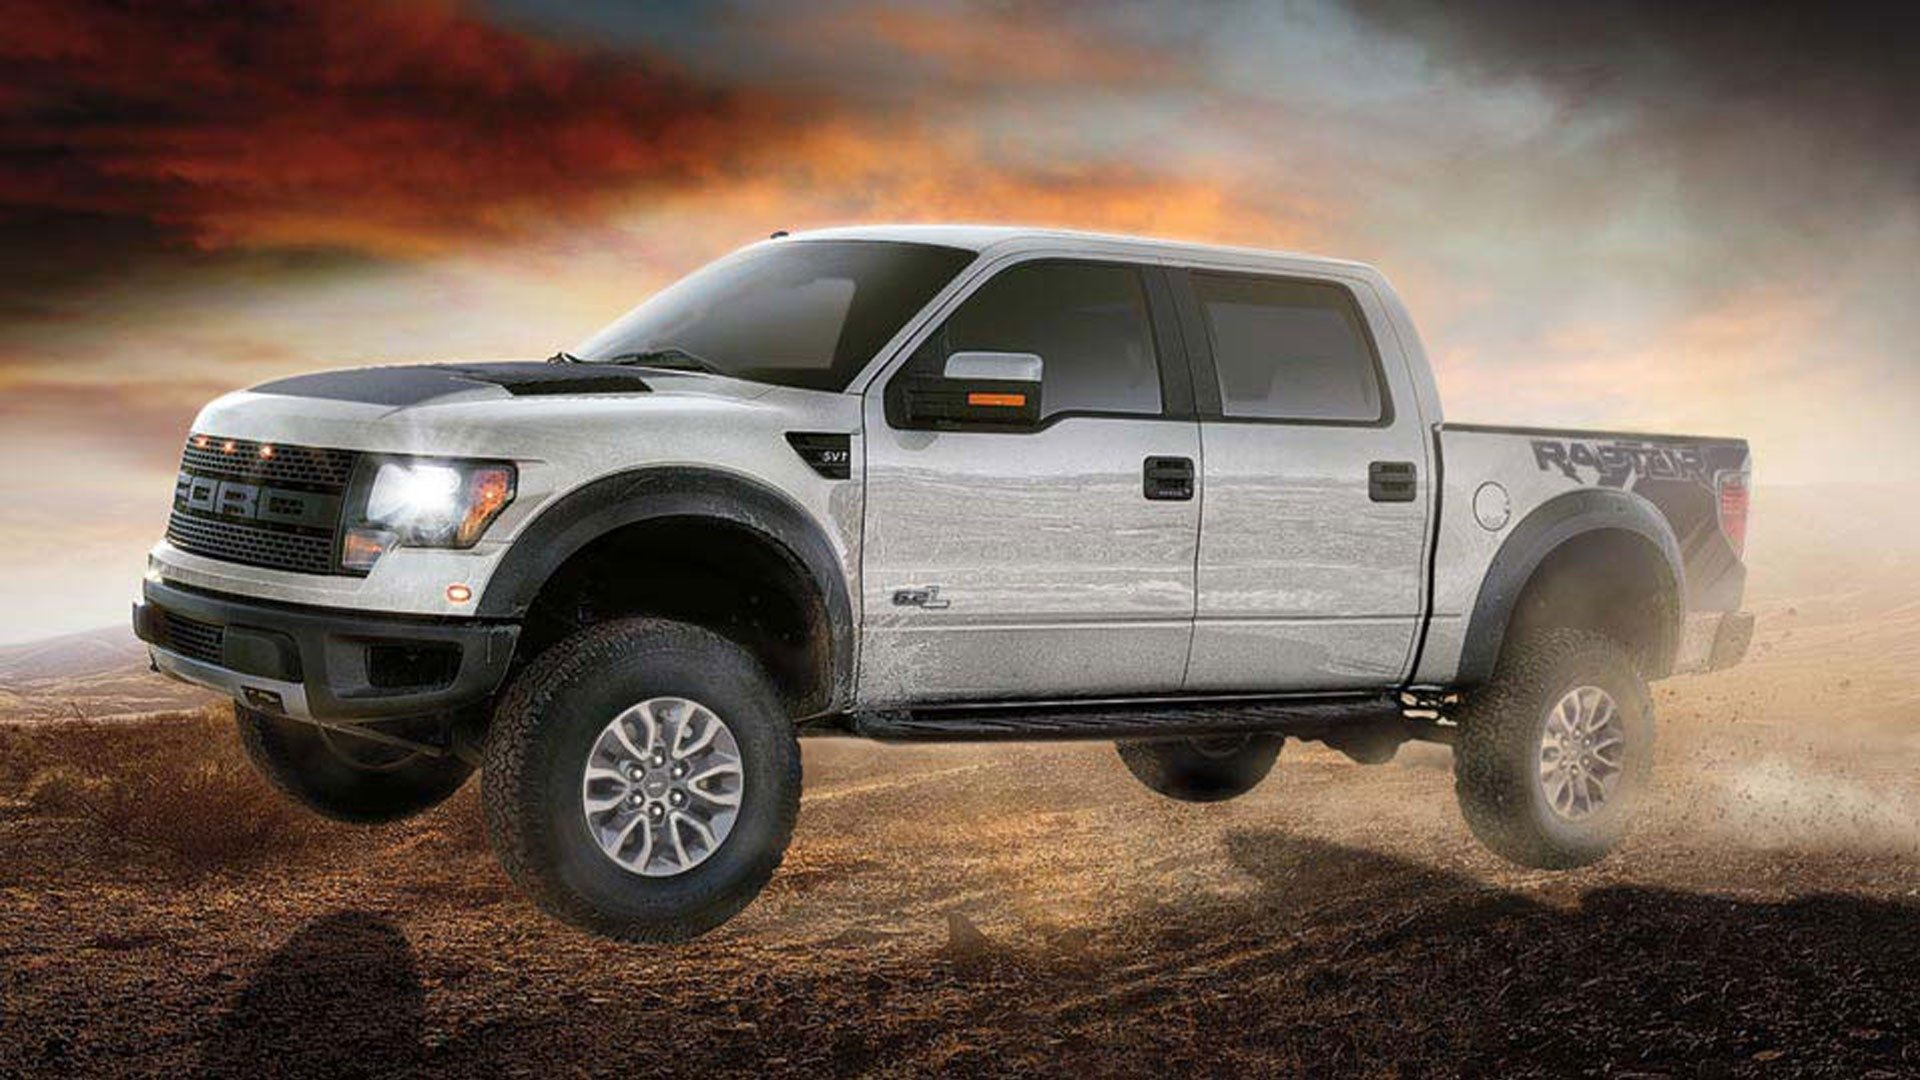 Ford Raptor Hd Wallpapers Free Download Ololoshenka Pinterest